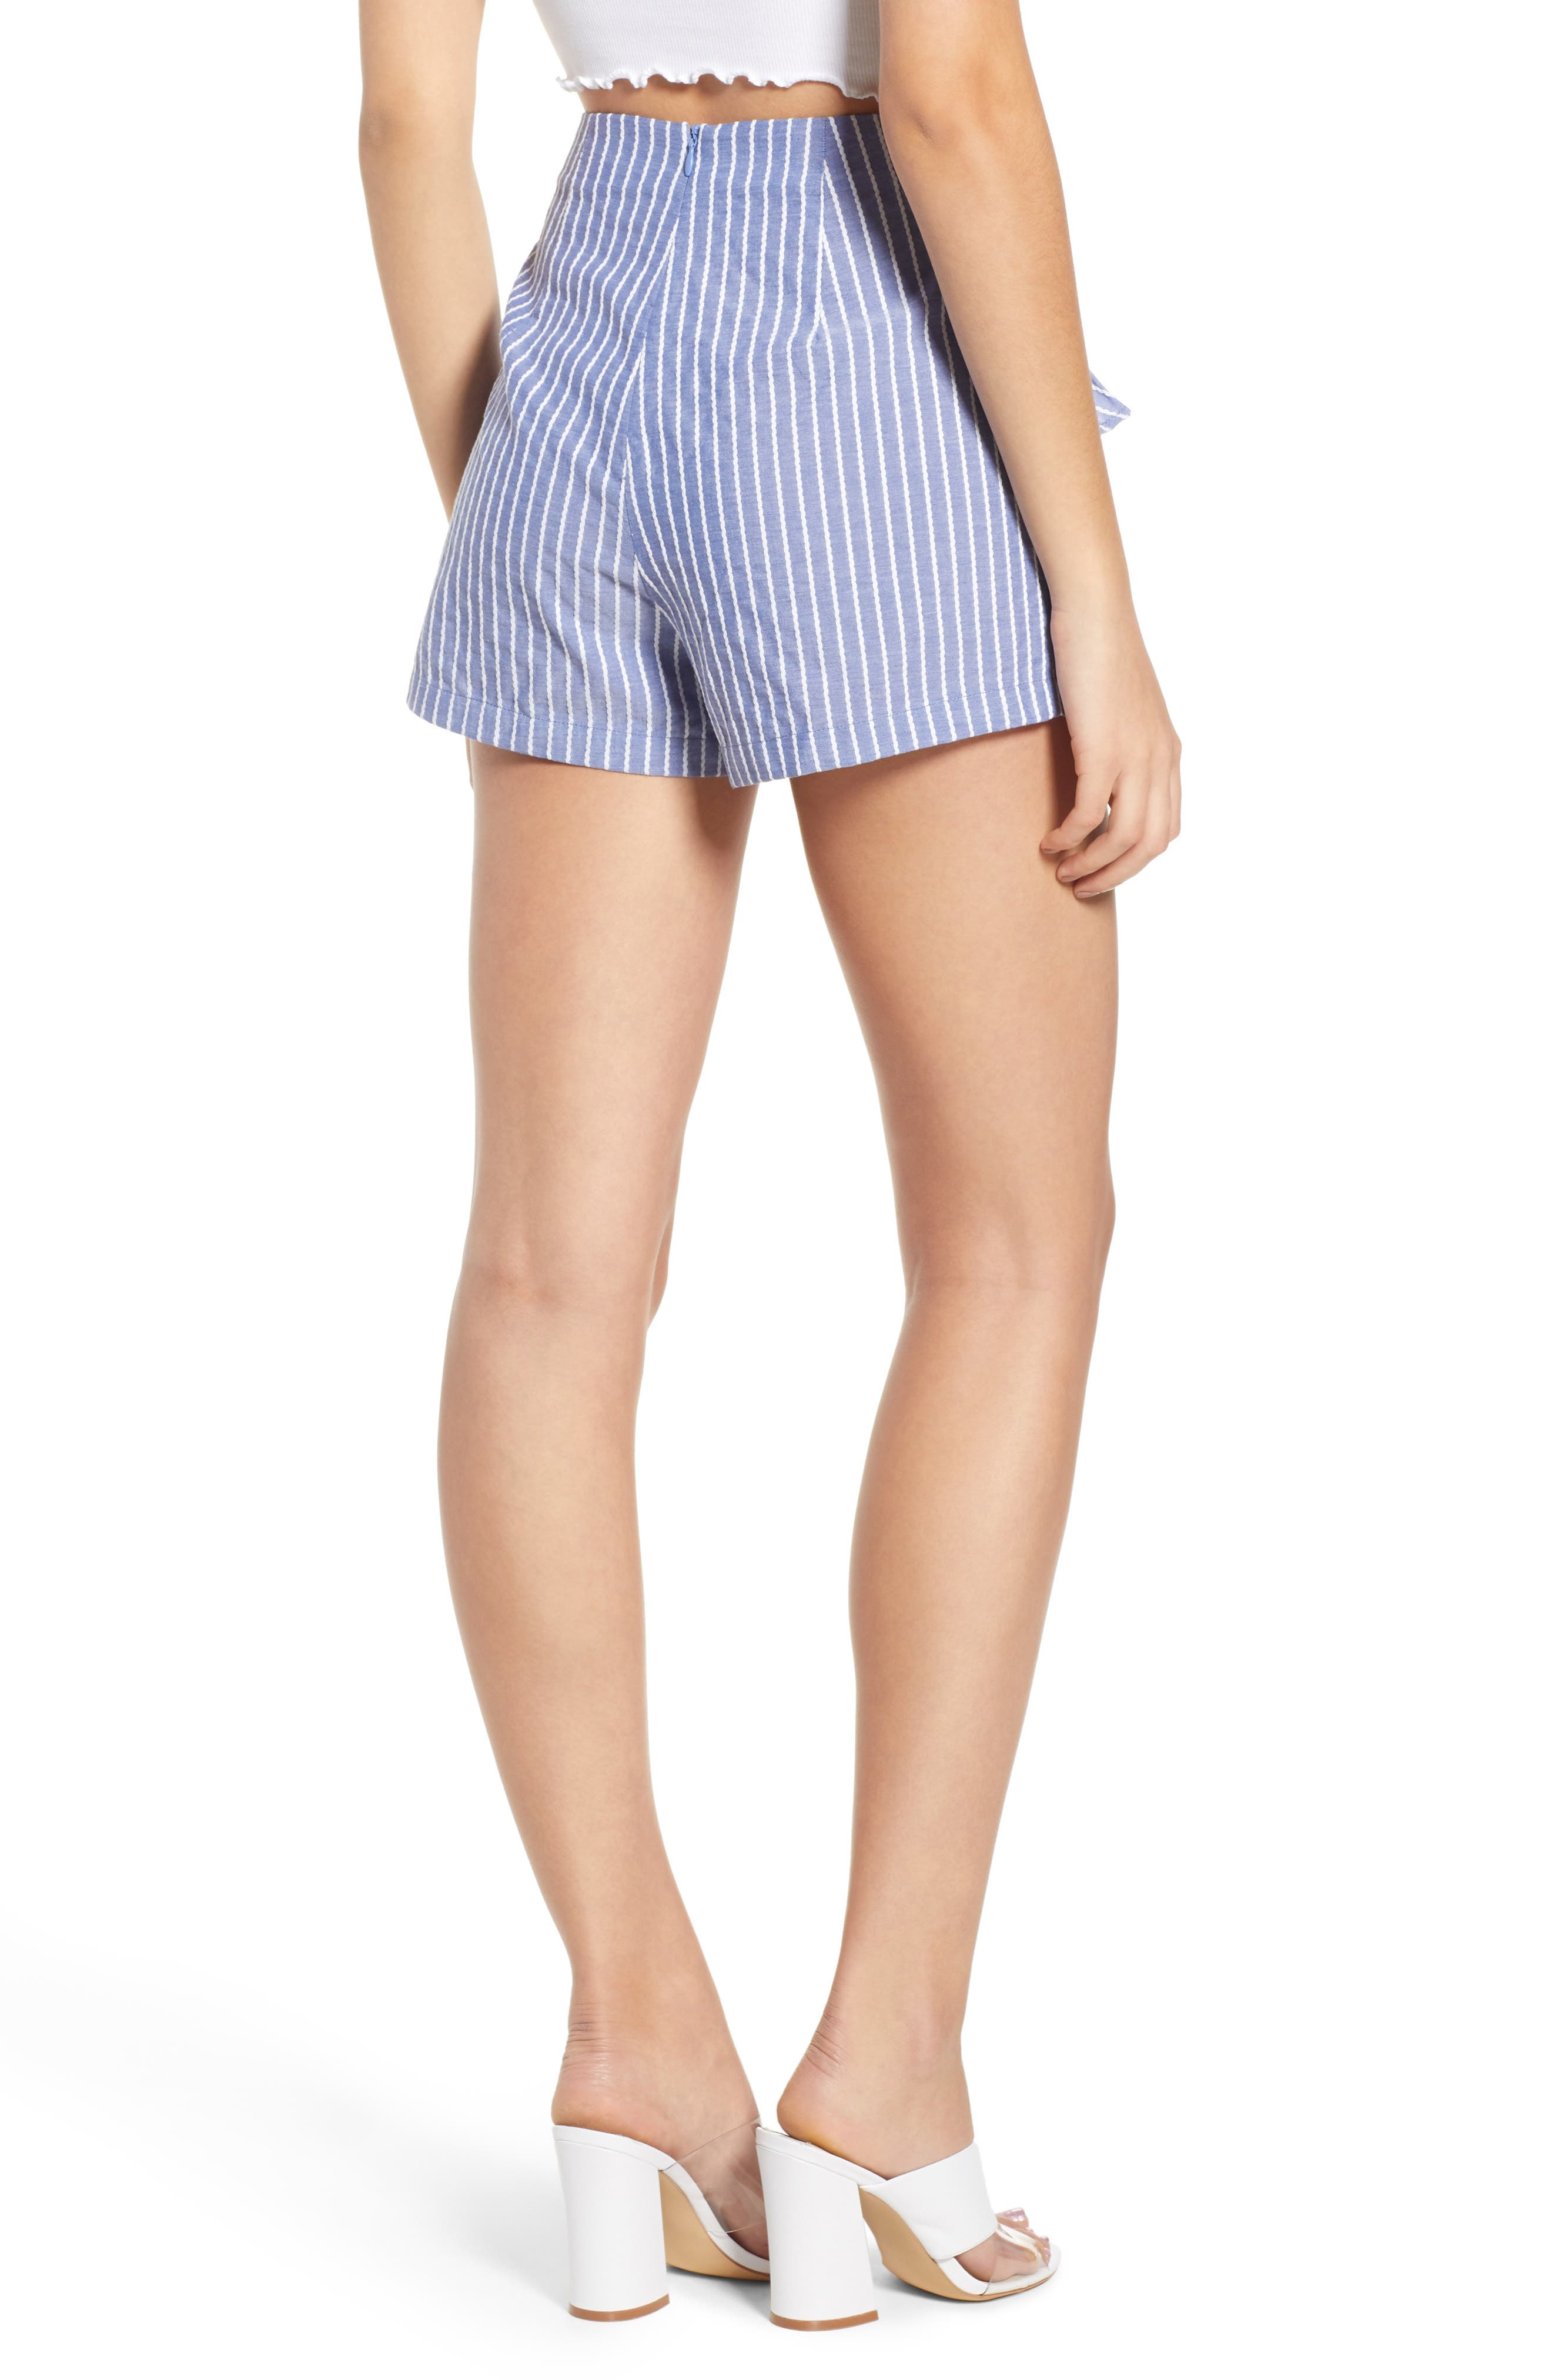 Parcel Ruffle Detail Shorts,                             Alternate thumbnail 7, color,                             Blue With White